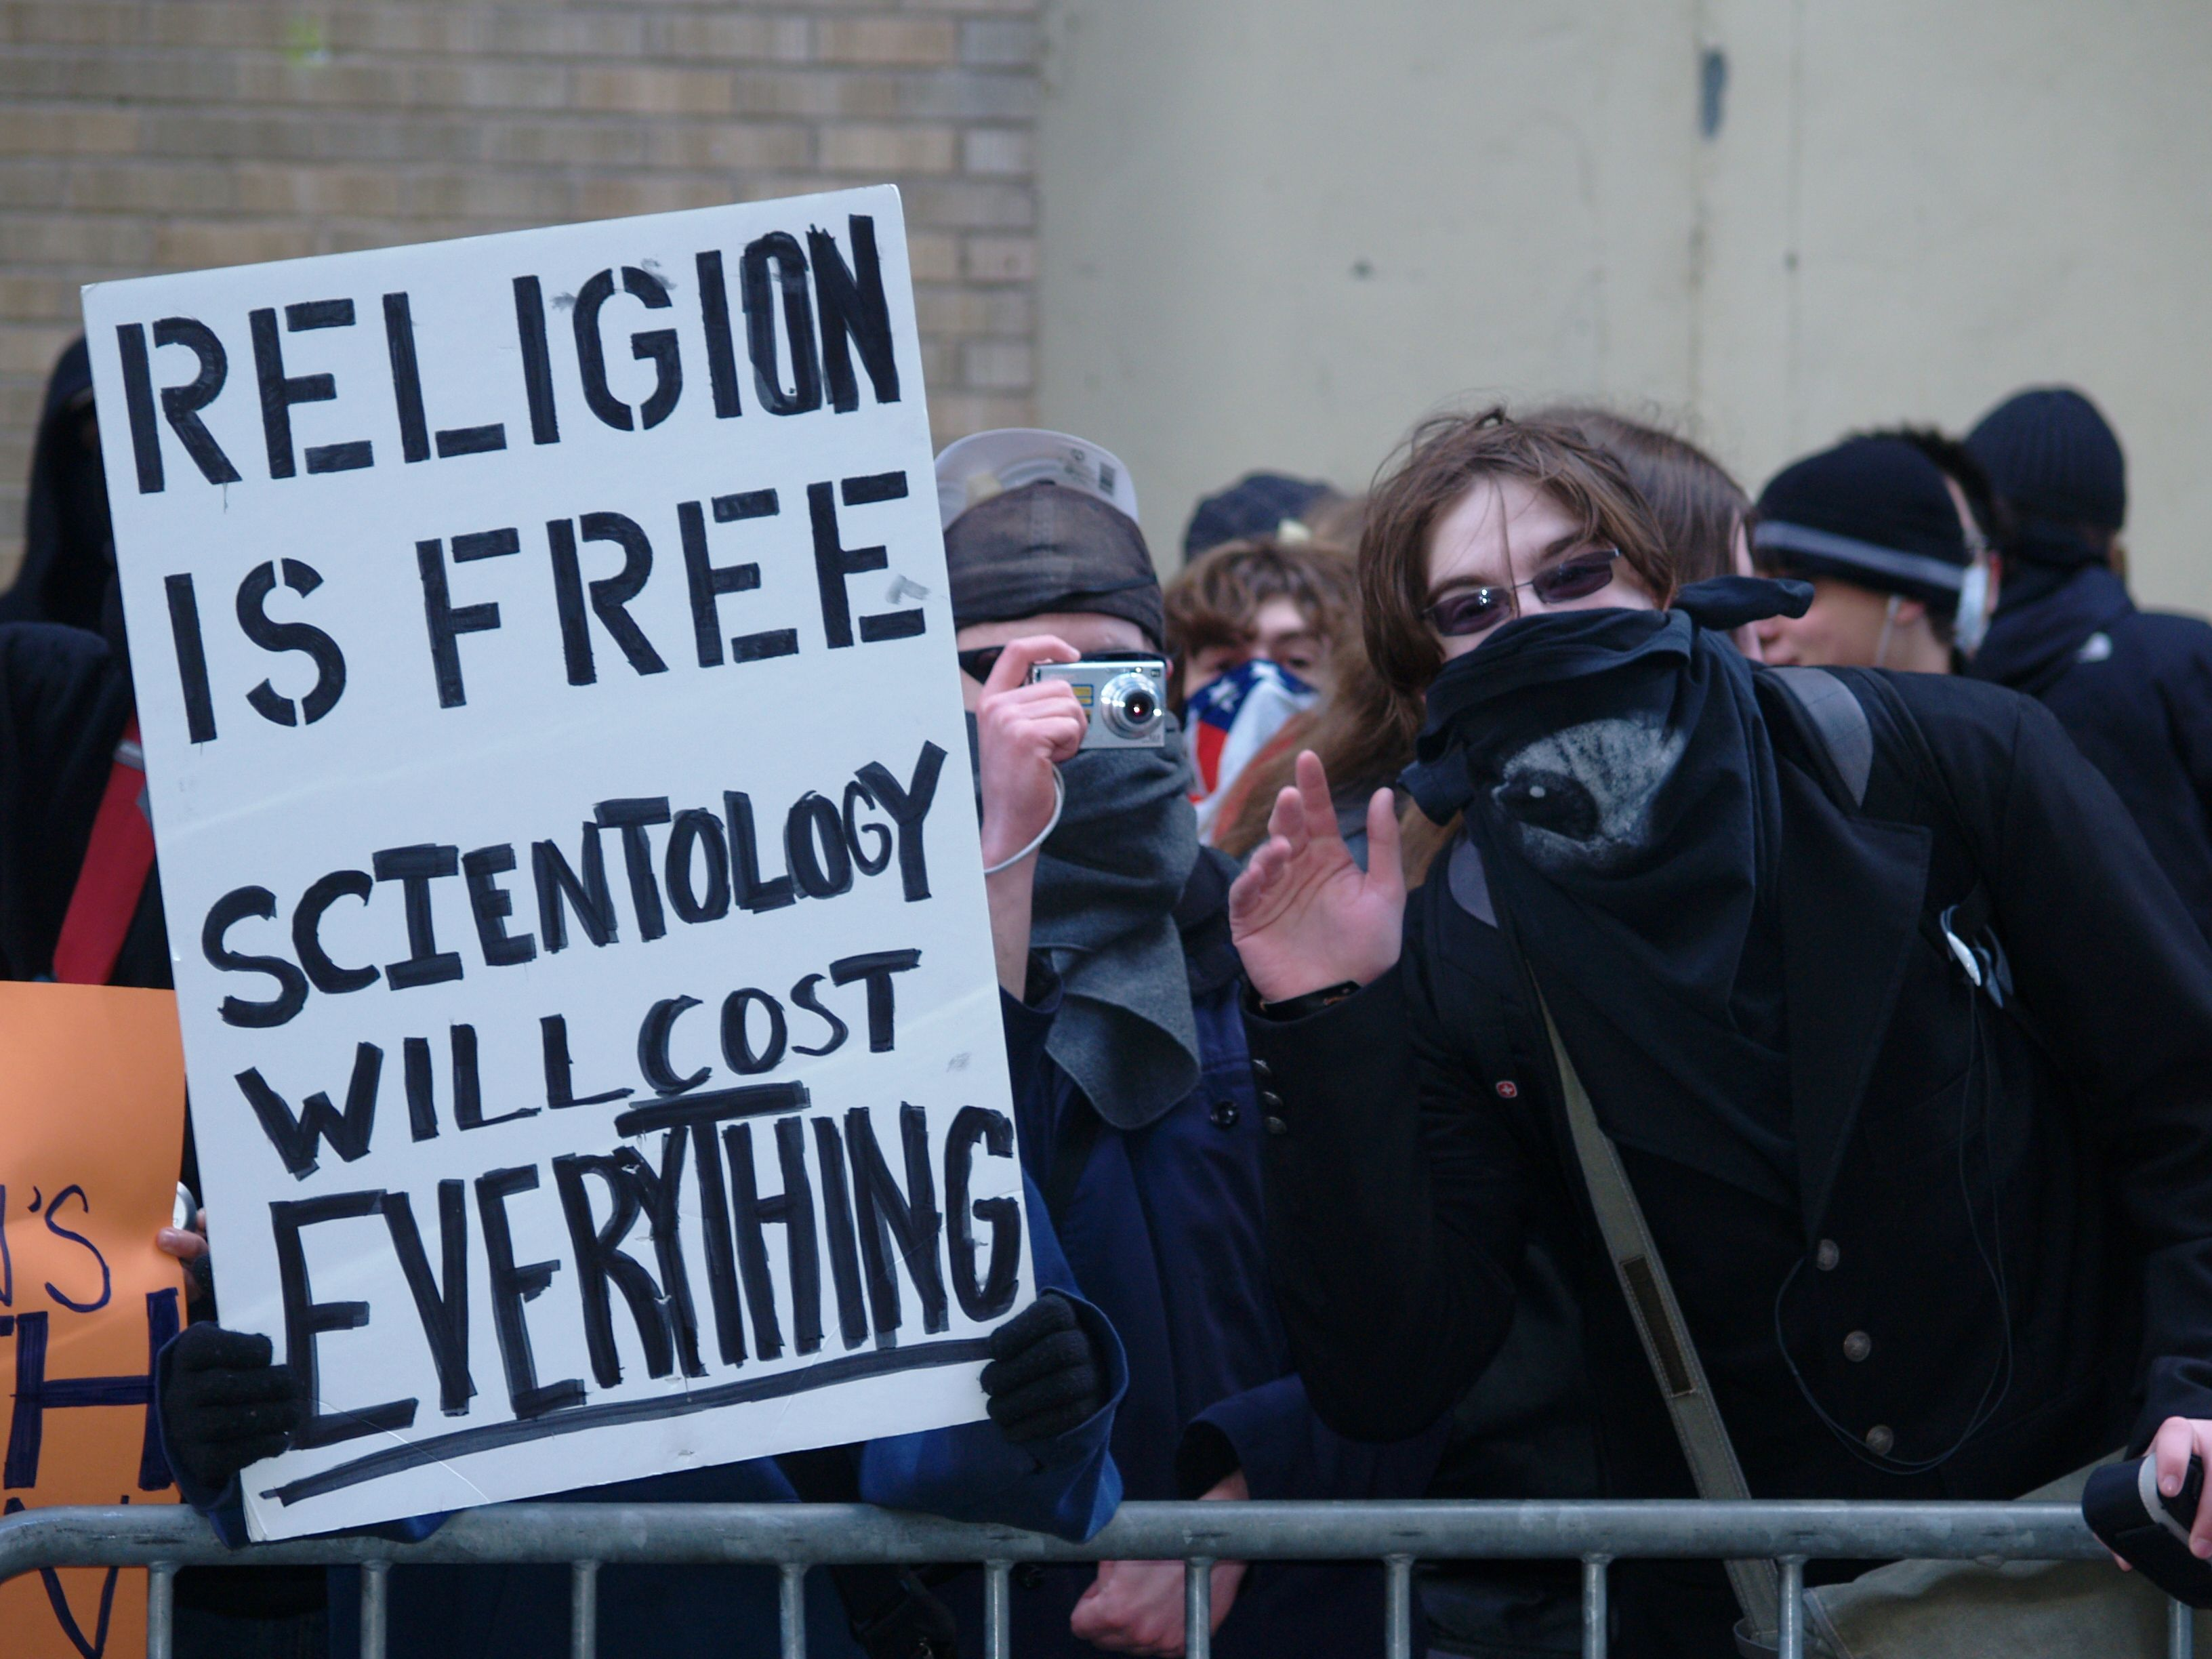 5. Scientology has been known to be very hostile towards its critics.